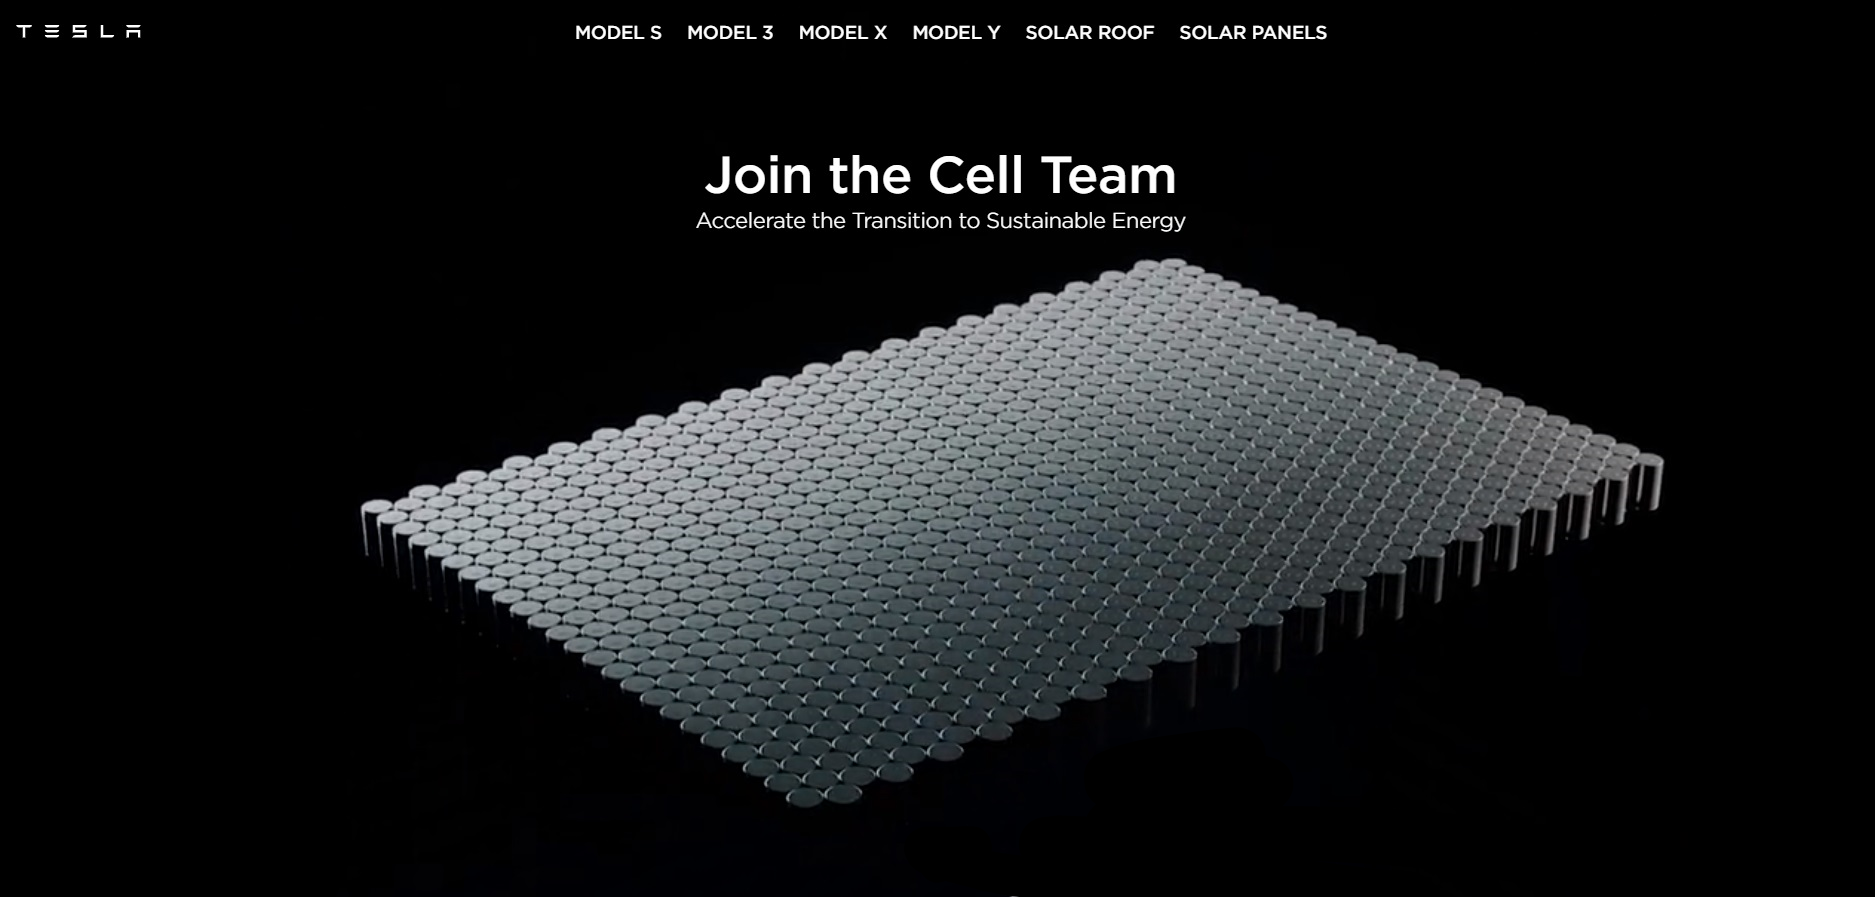 Tesla 4680 Battery Cell Production Team Launches New Recruitment Campaign 'Tera is the New Giga'